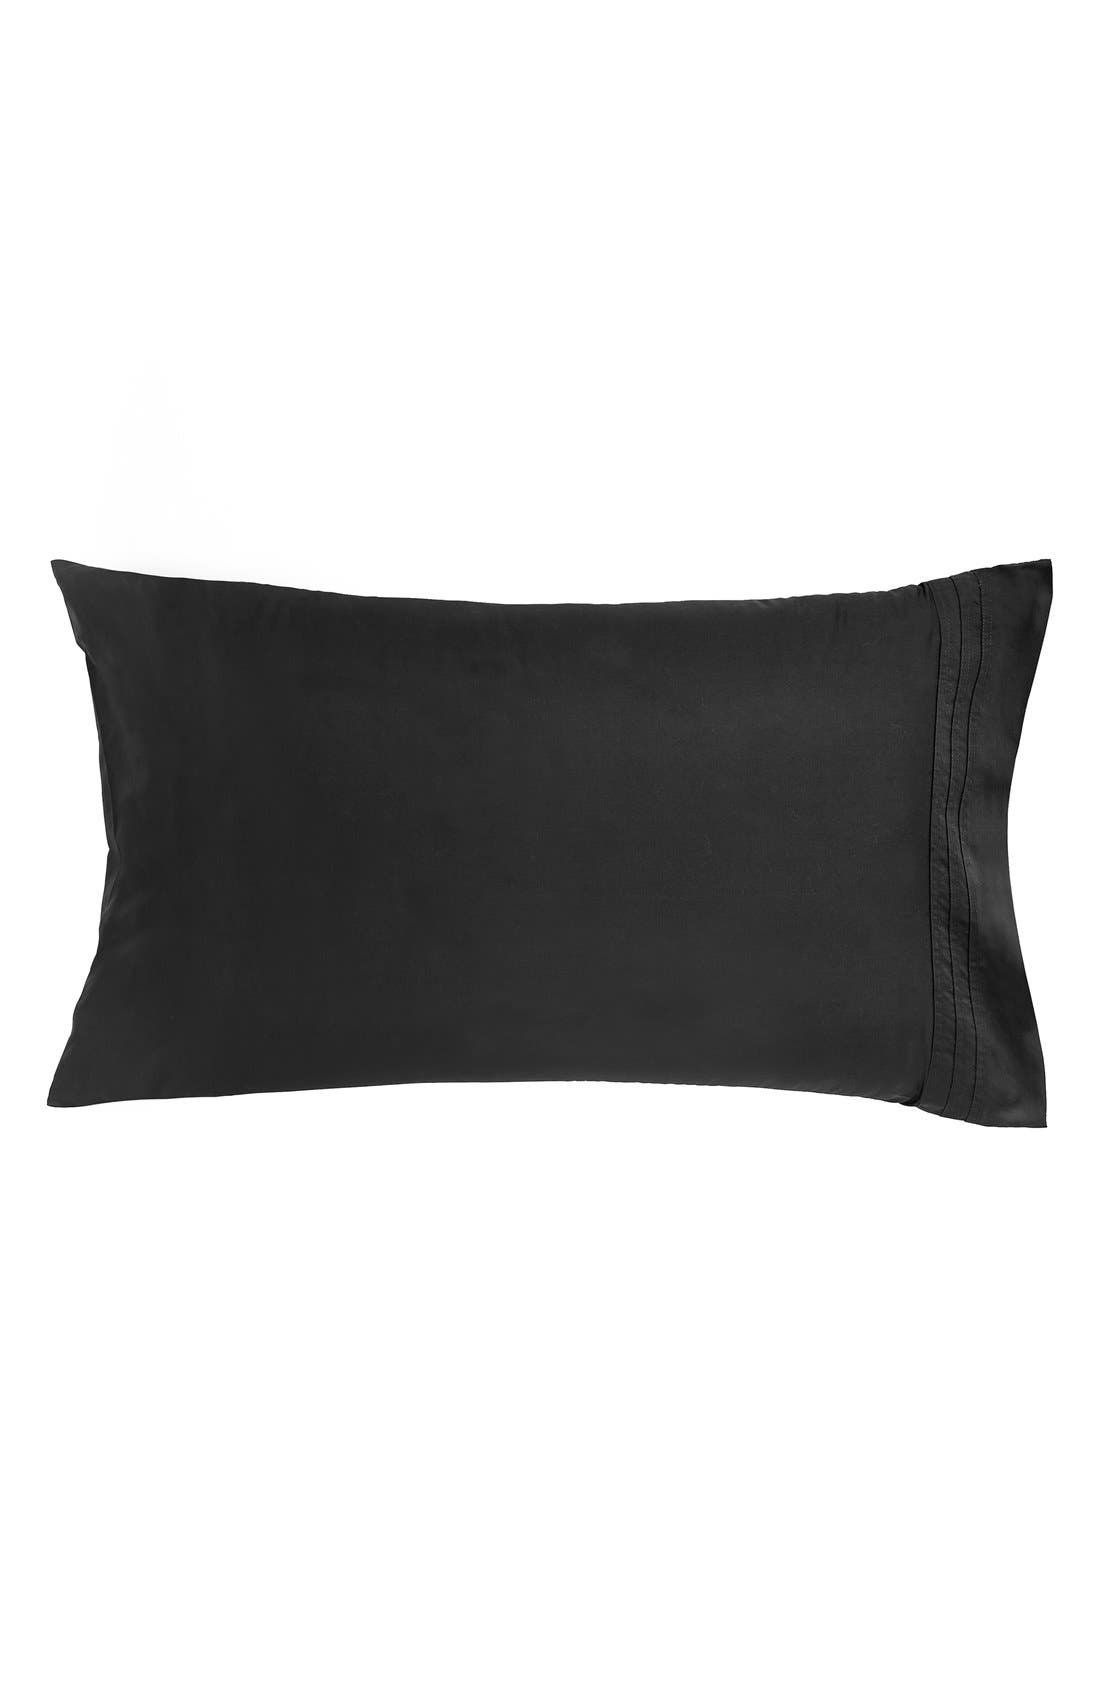 Alternate Image 1 Selected - Donna Karan 510 Thread Count Pillowcase (Online Only)